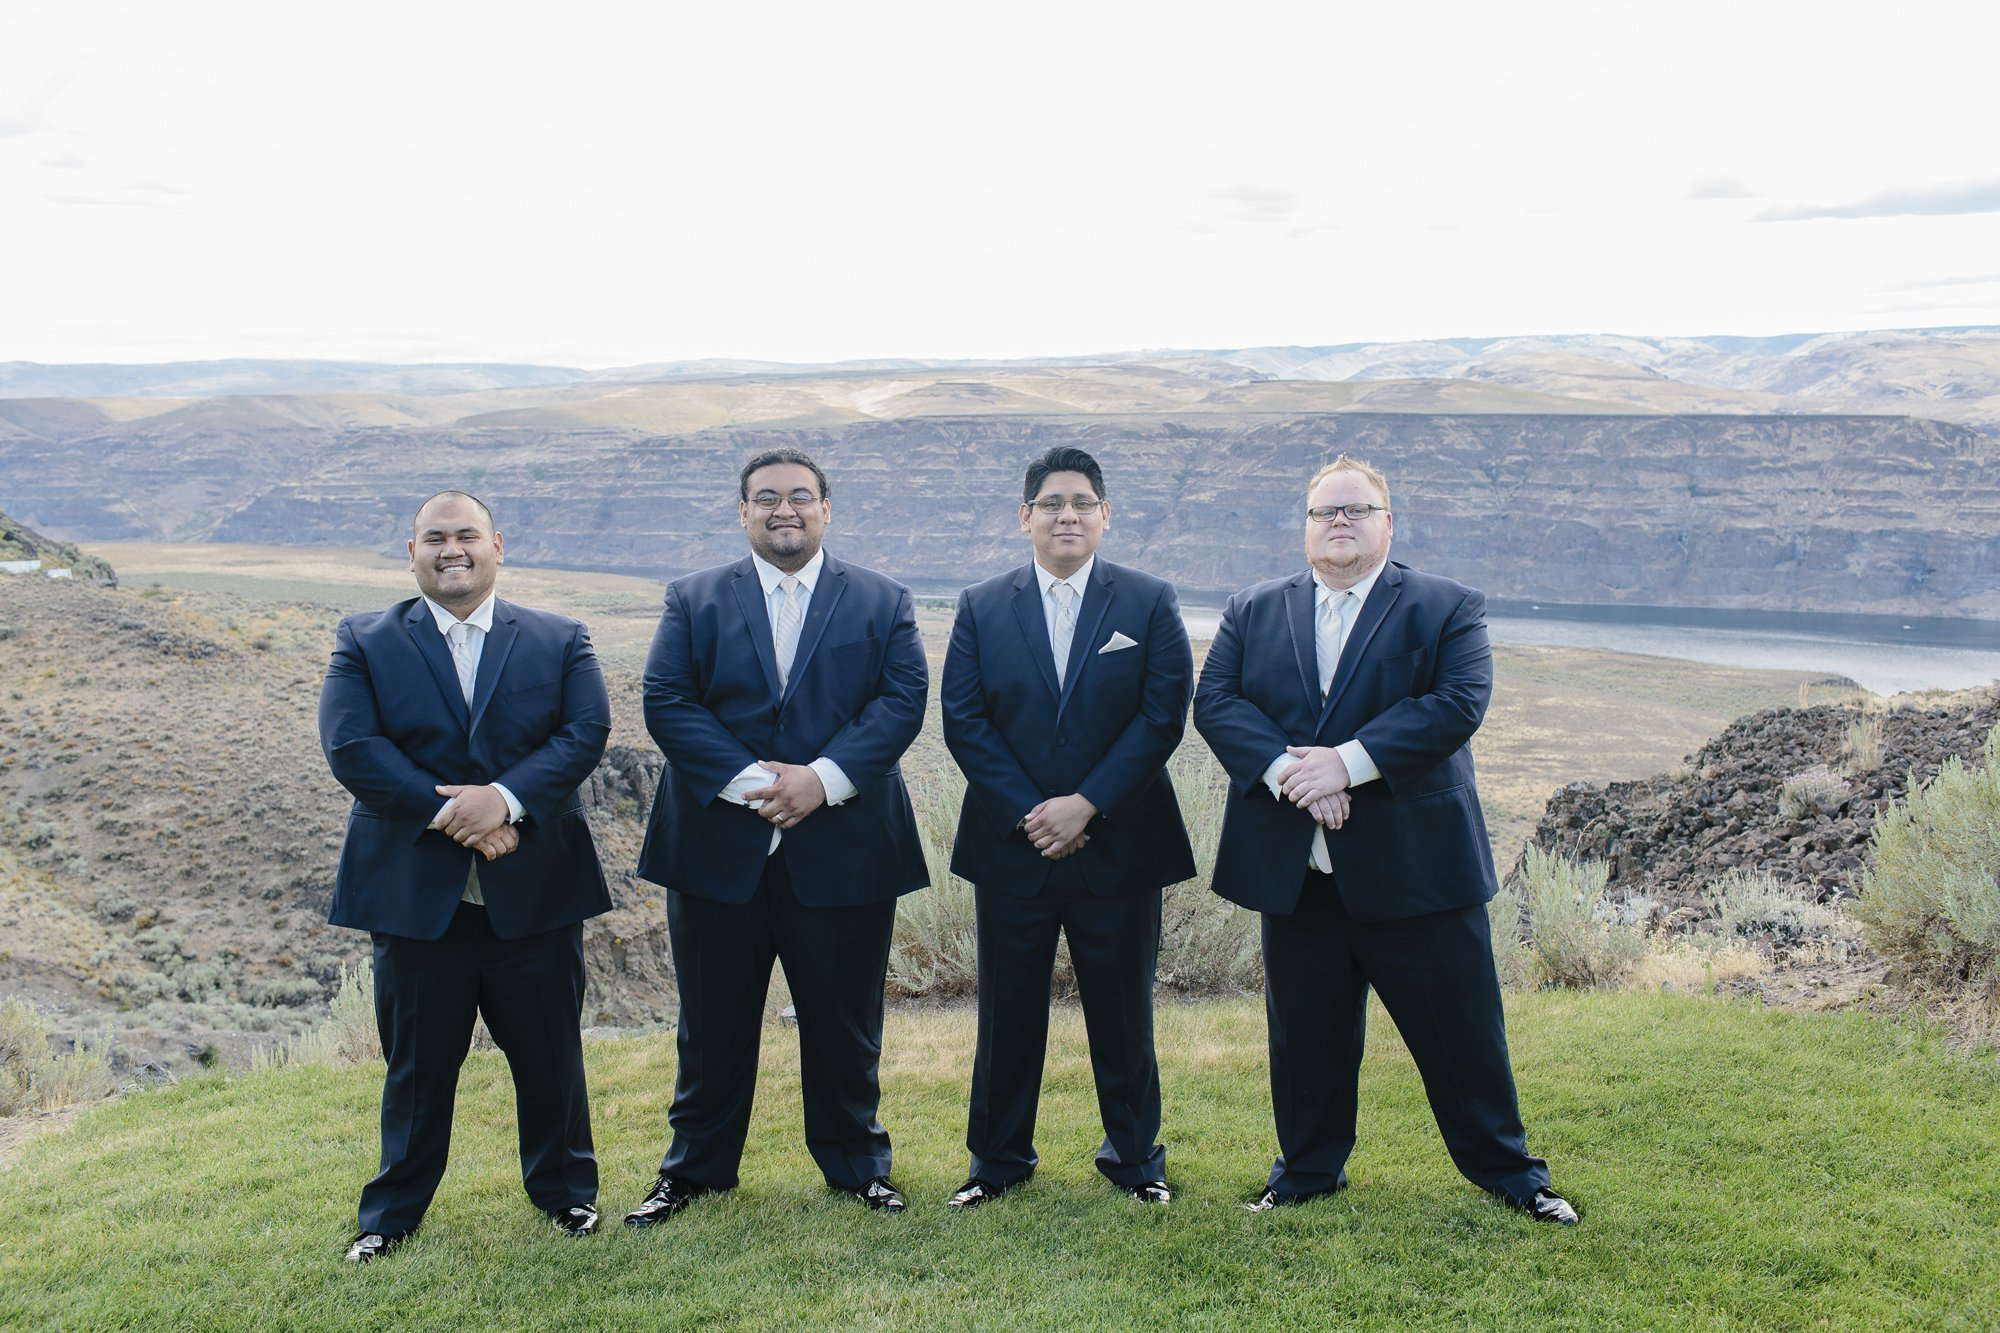 Tri Cities Wedding Photographer // Emily Wenzel Photography